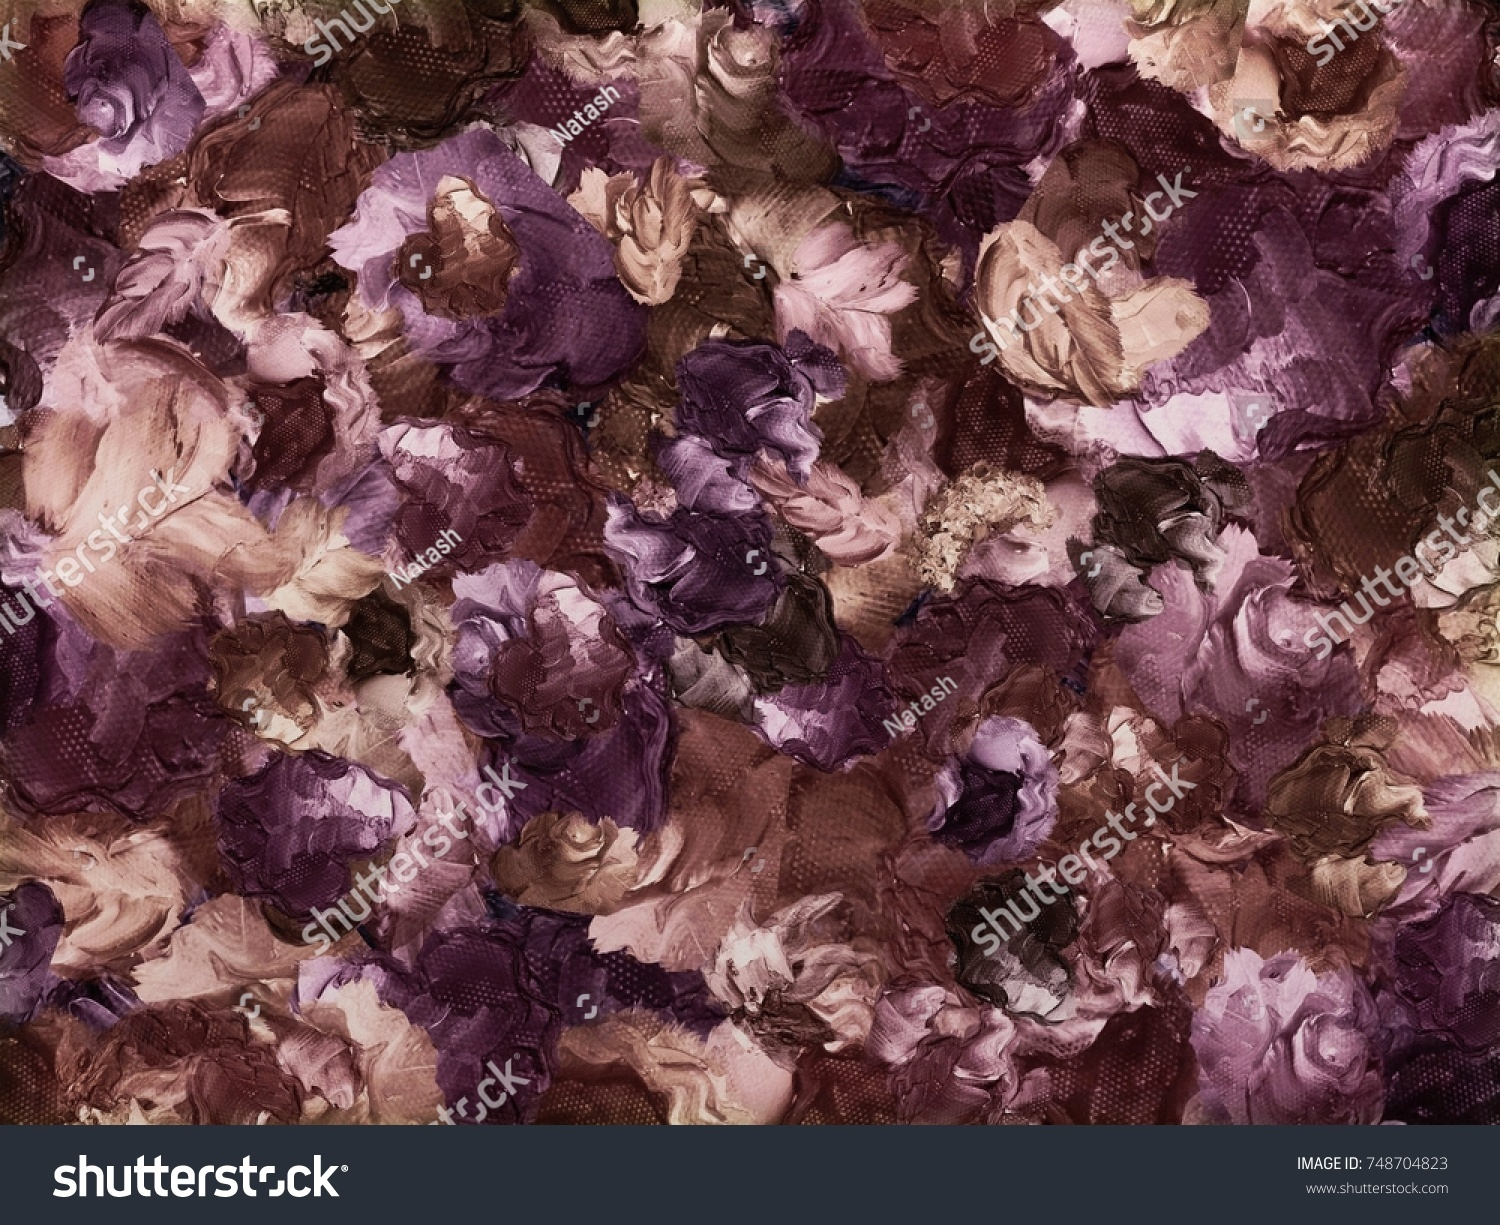 Abstract Vintage Floral Computer Background Created Stock Photo